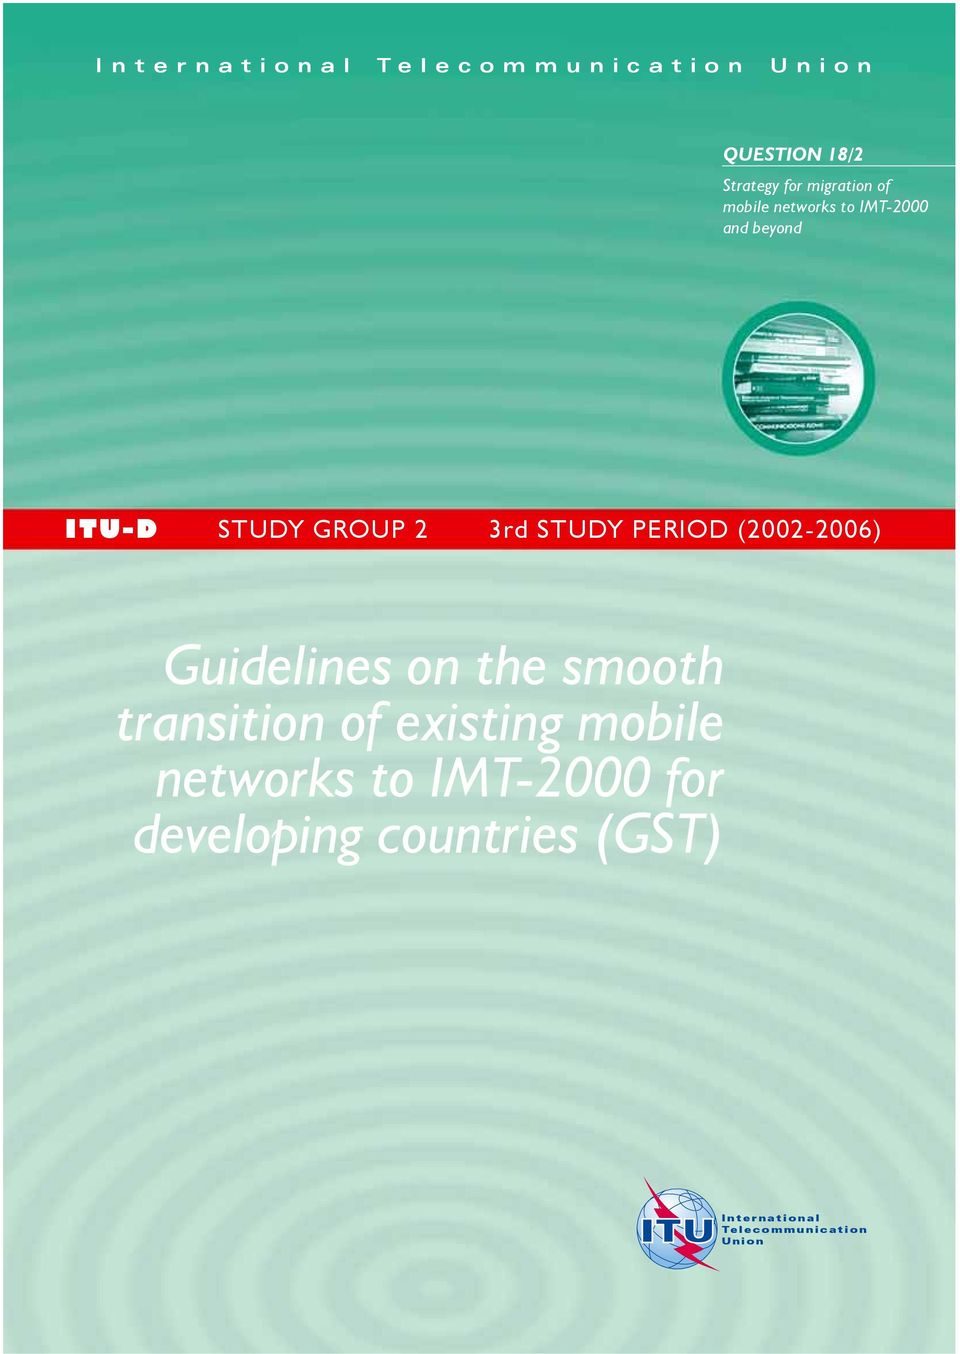 (2002-2006) Guidelines on the smooth transition of existing mobile networks